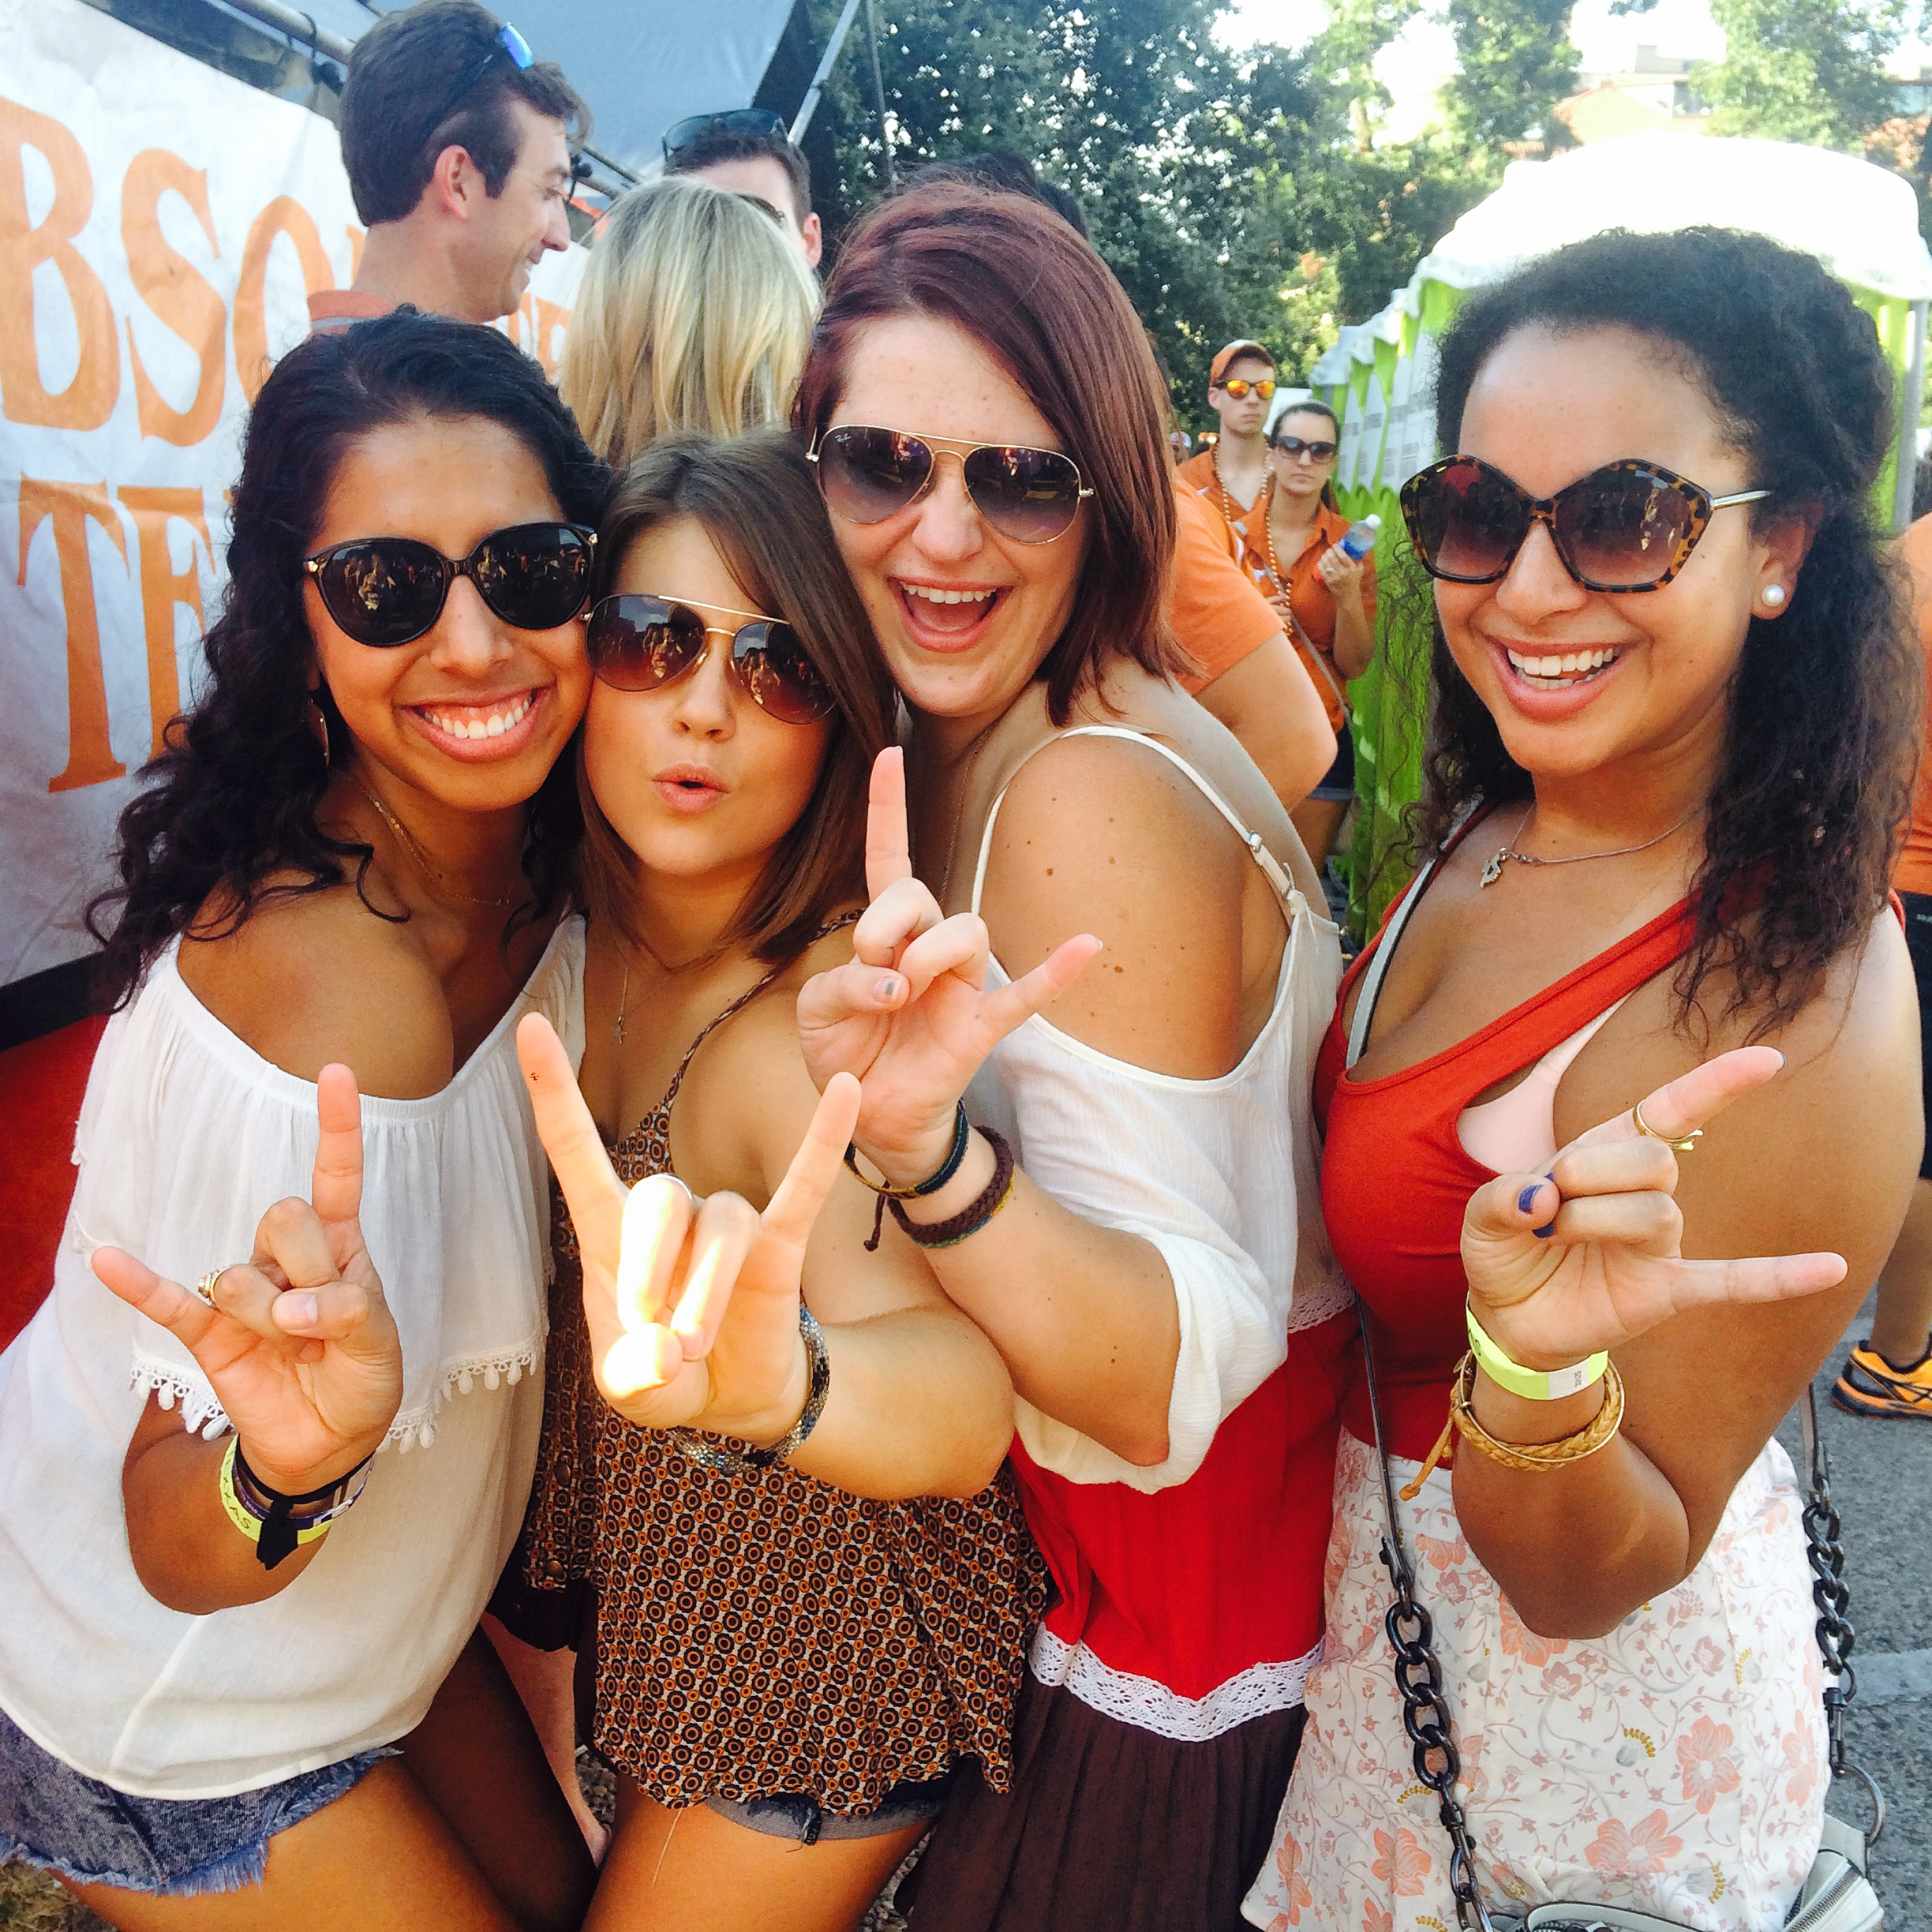 My 5 Favorite Things About UT Football